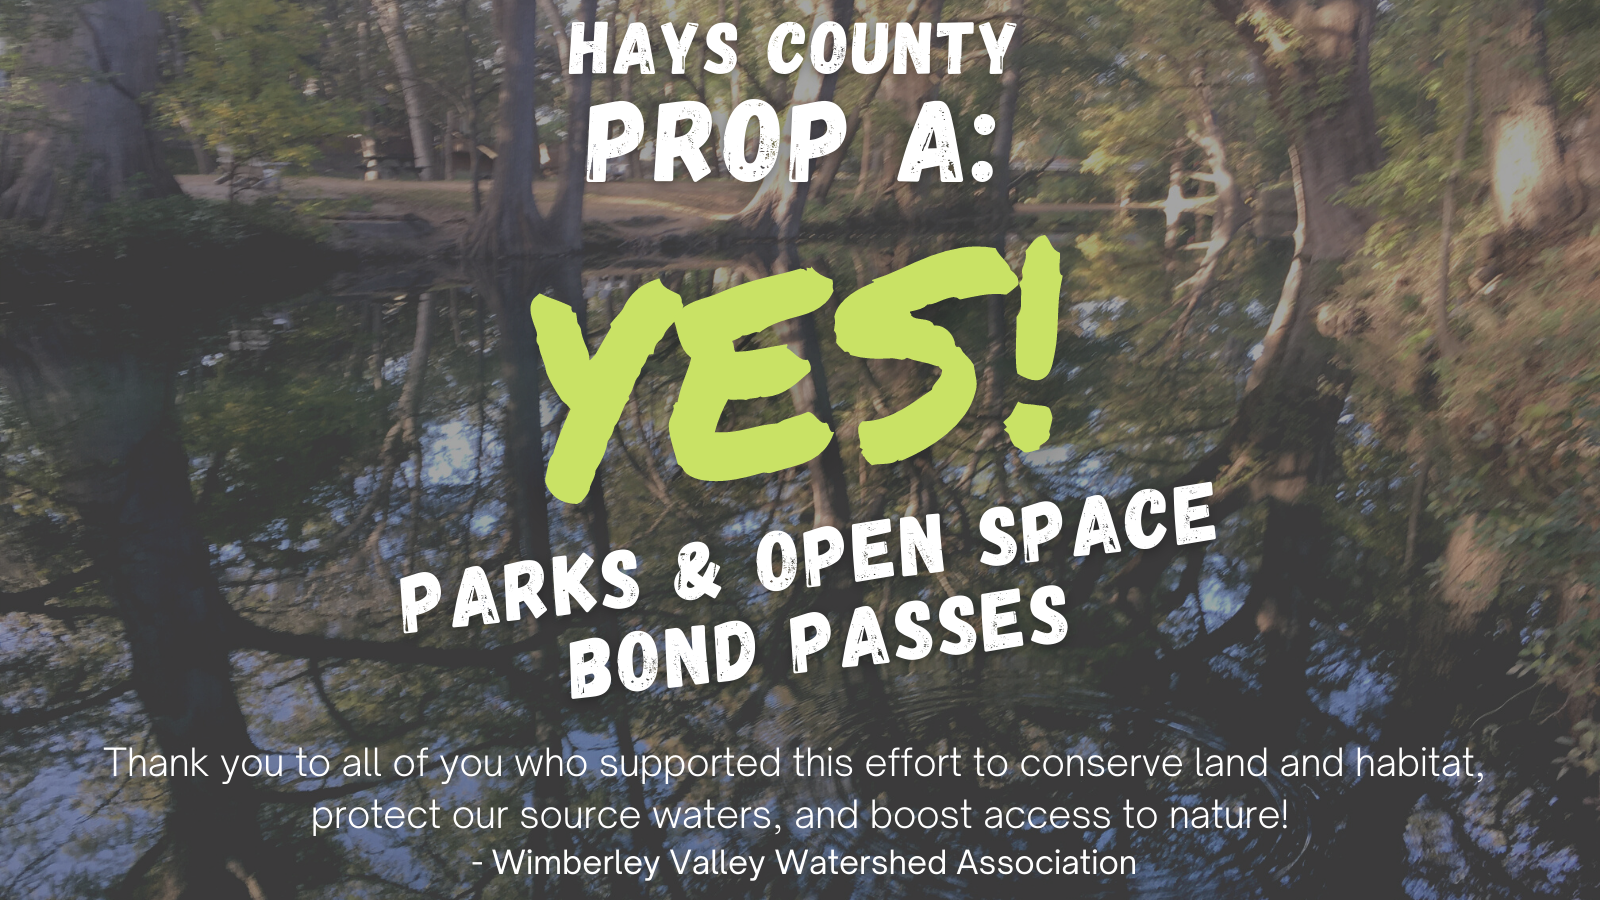 Hays Co Prop A PASSED!